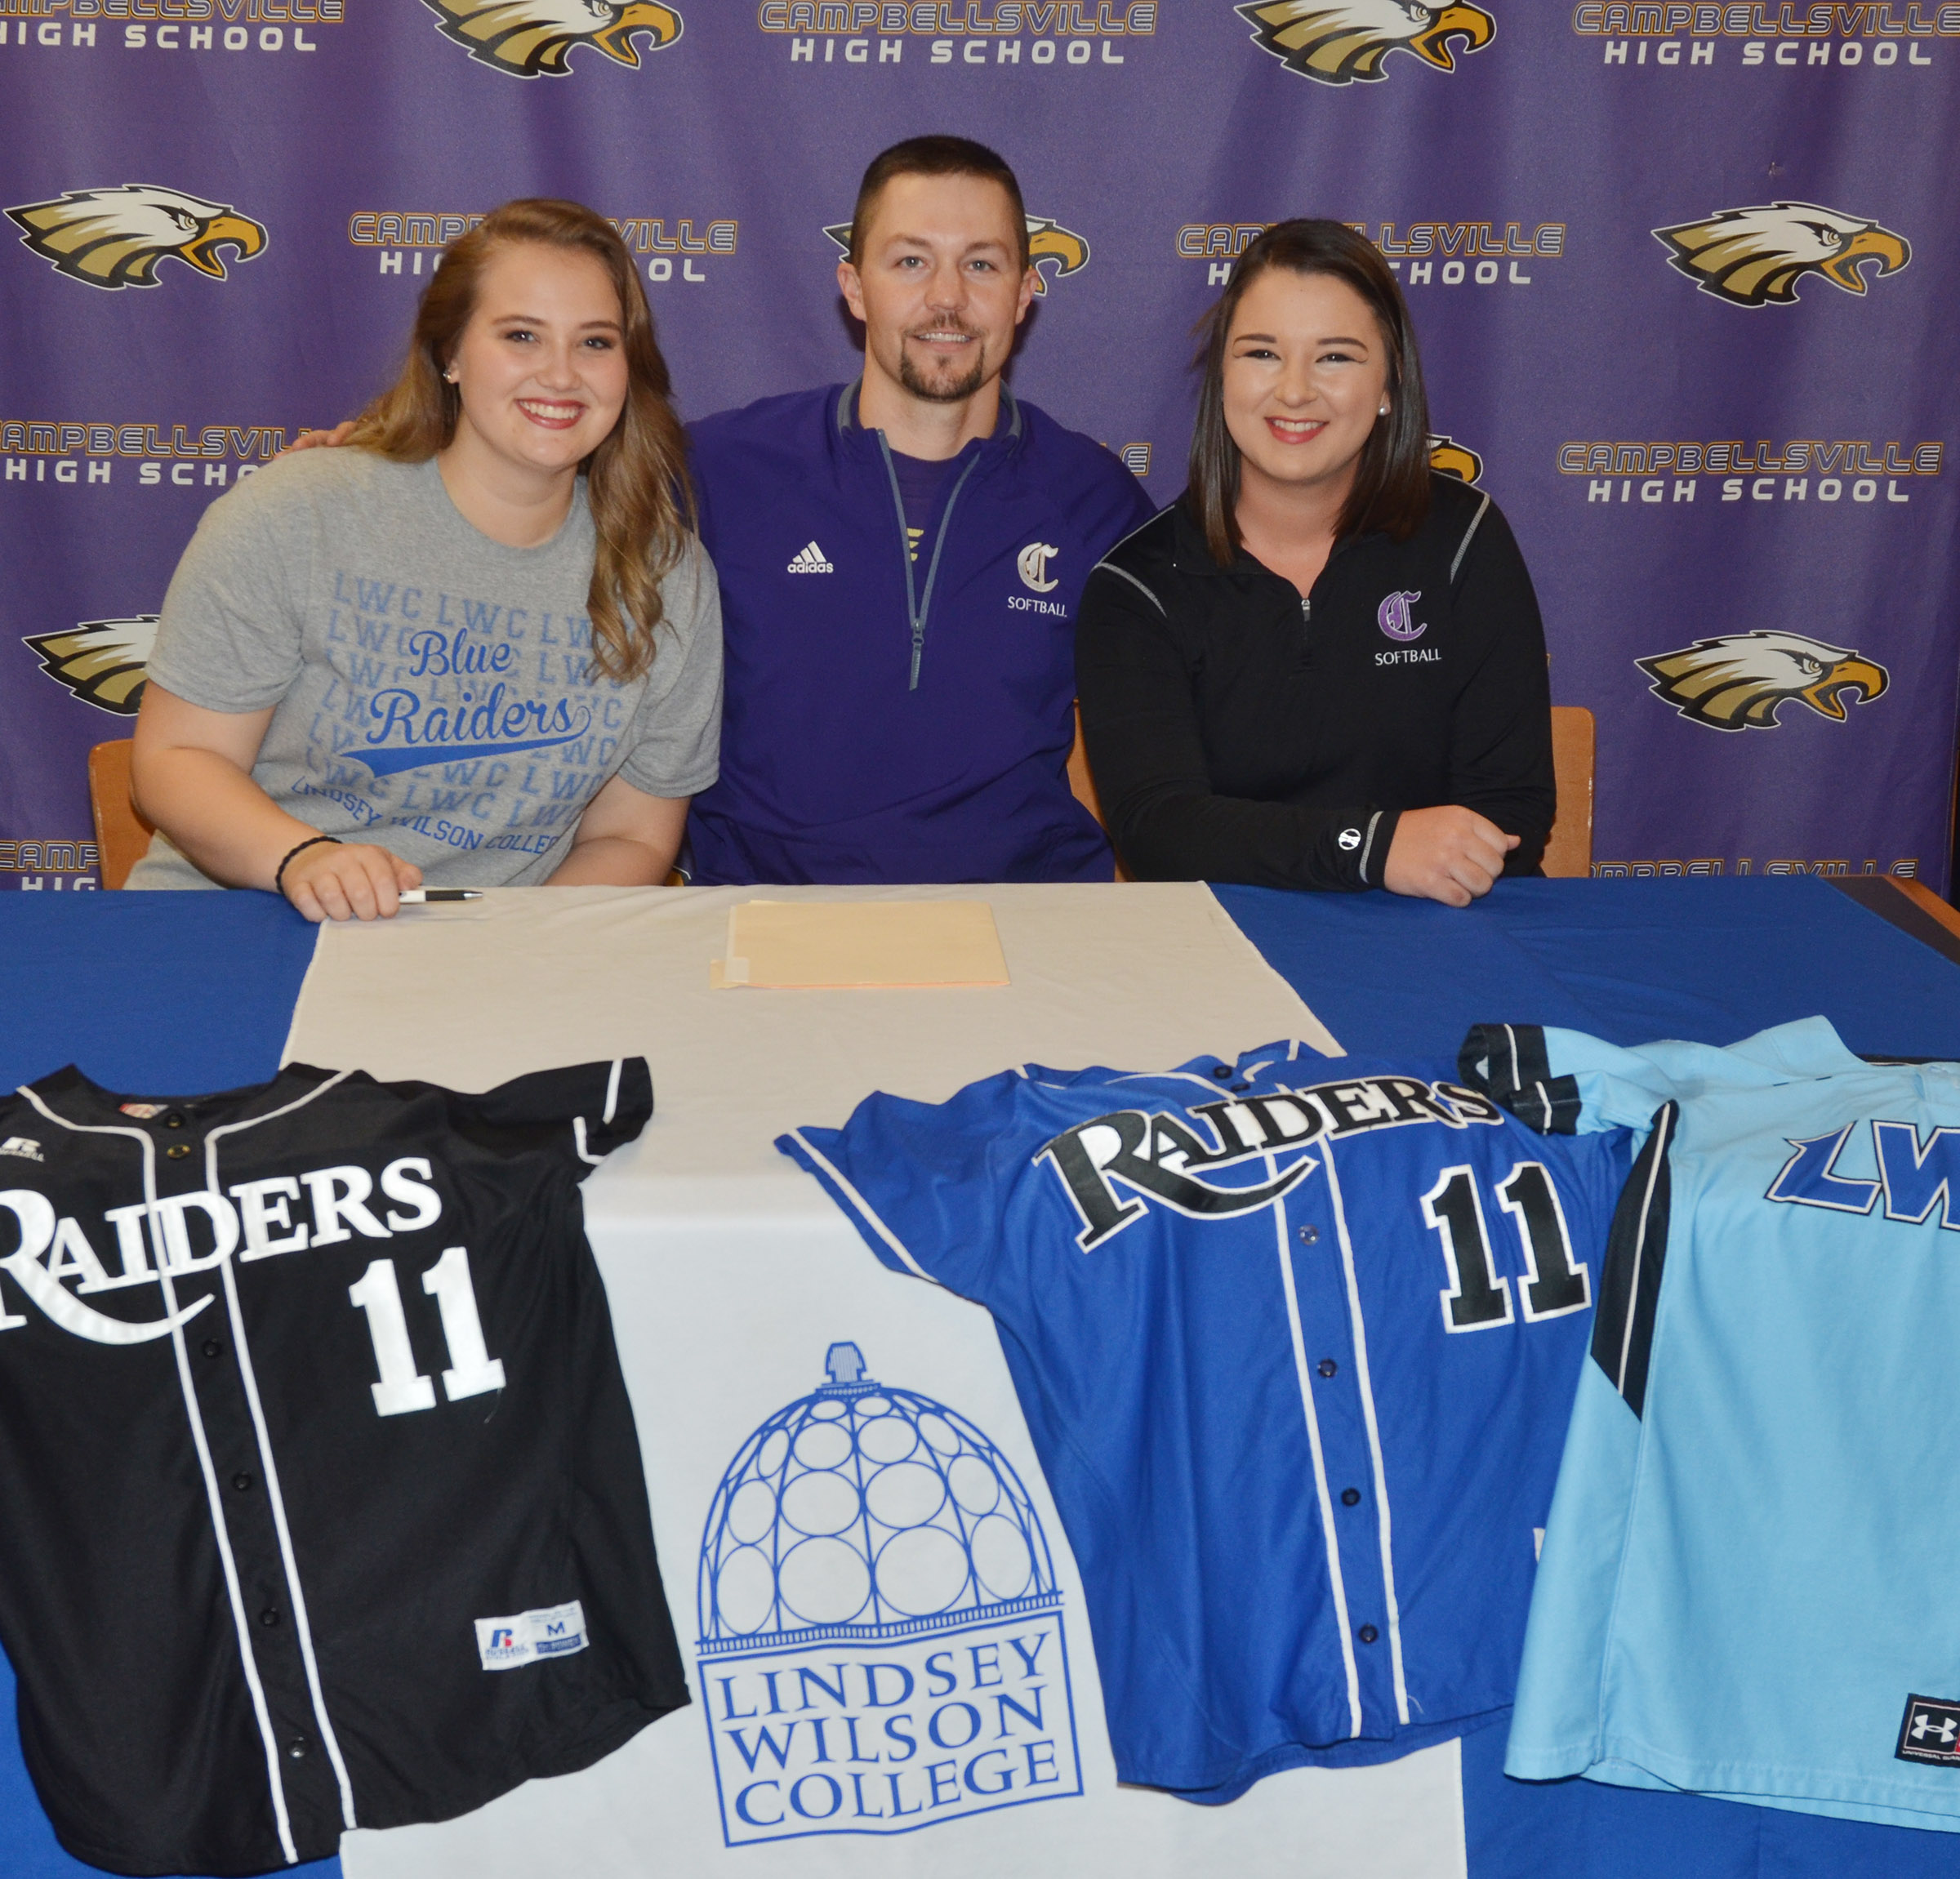 CHS senior Brenna Wethington has signed to continue her softball career at Lindsey Wilson College. She is pictured with CHS head softball coach Weston Jones and senior teammate Kailey Morris.